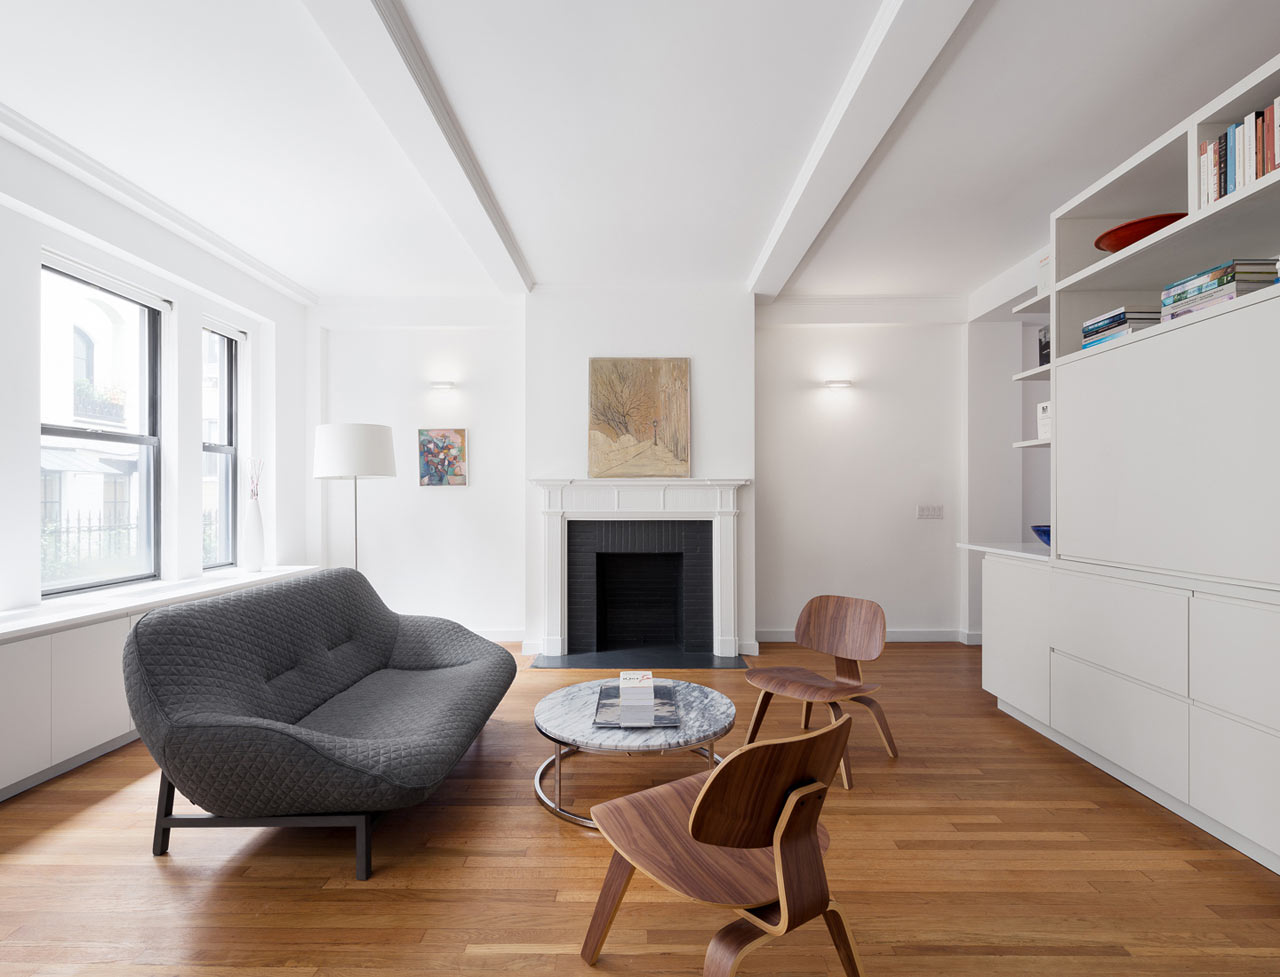 Pre-War, NYC Apartment Gets a Renovation - Design Milk